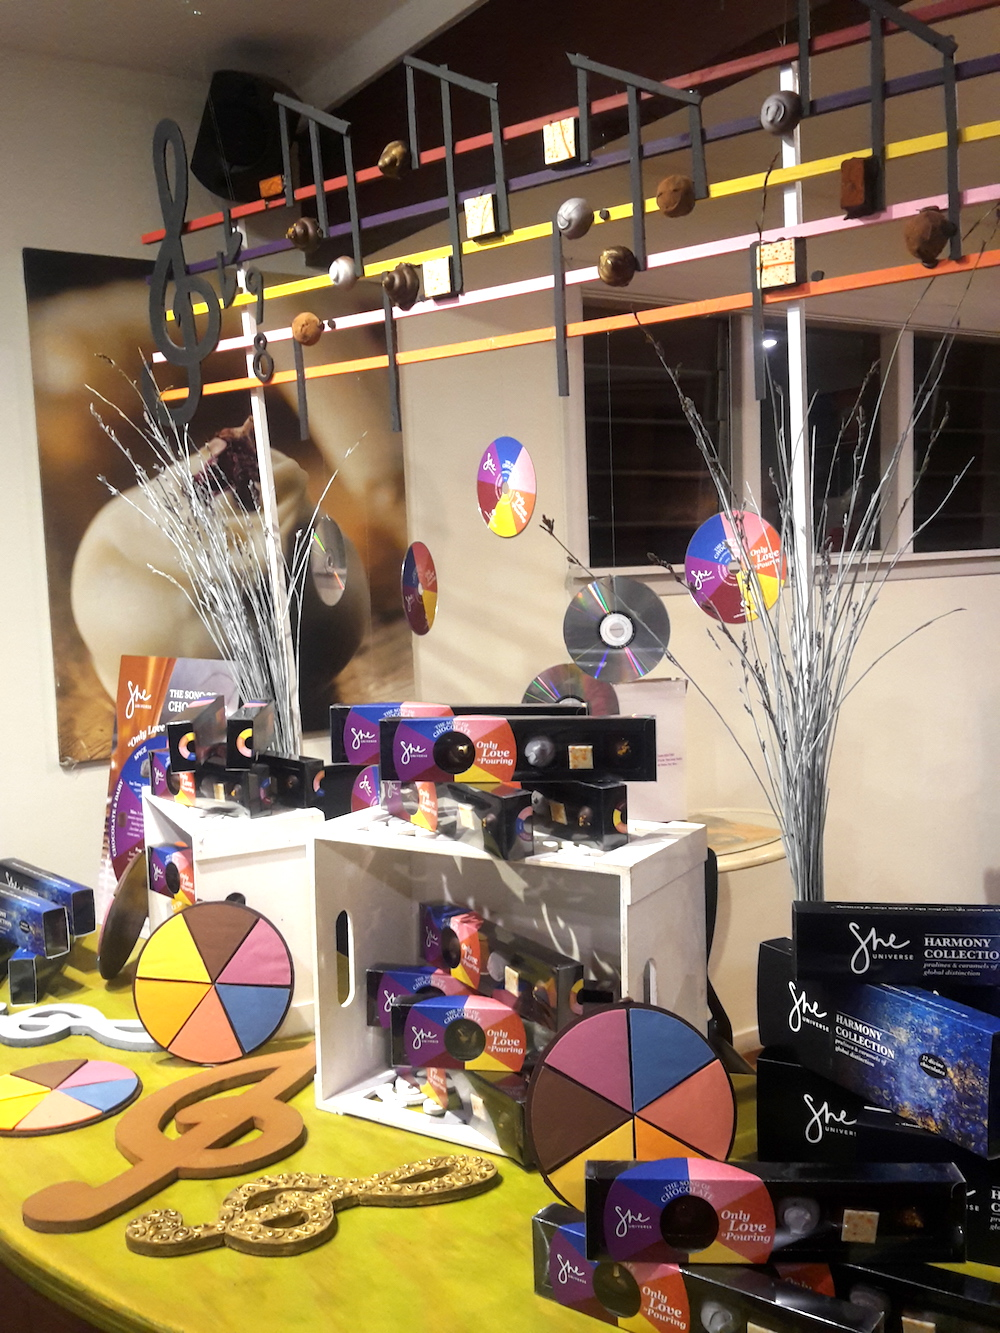 The counter display at She Universe, with chocolate music!